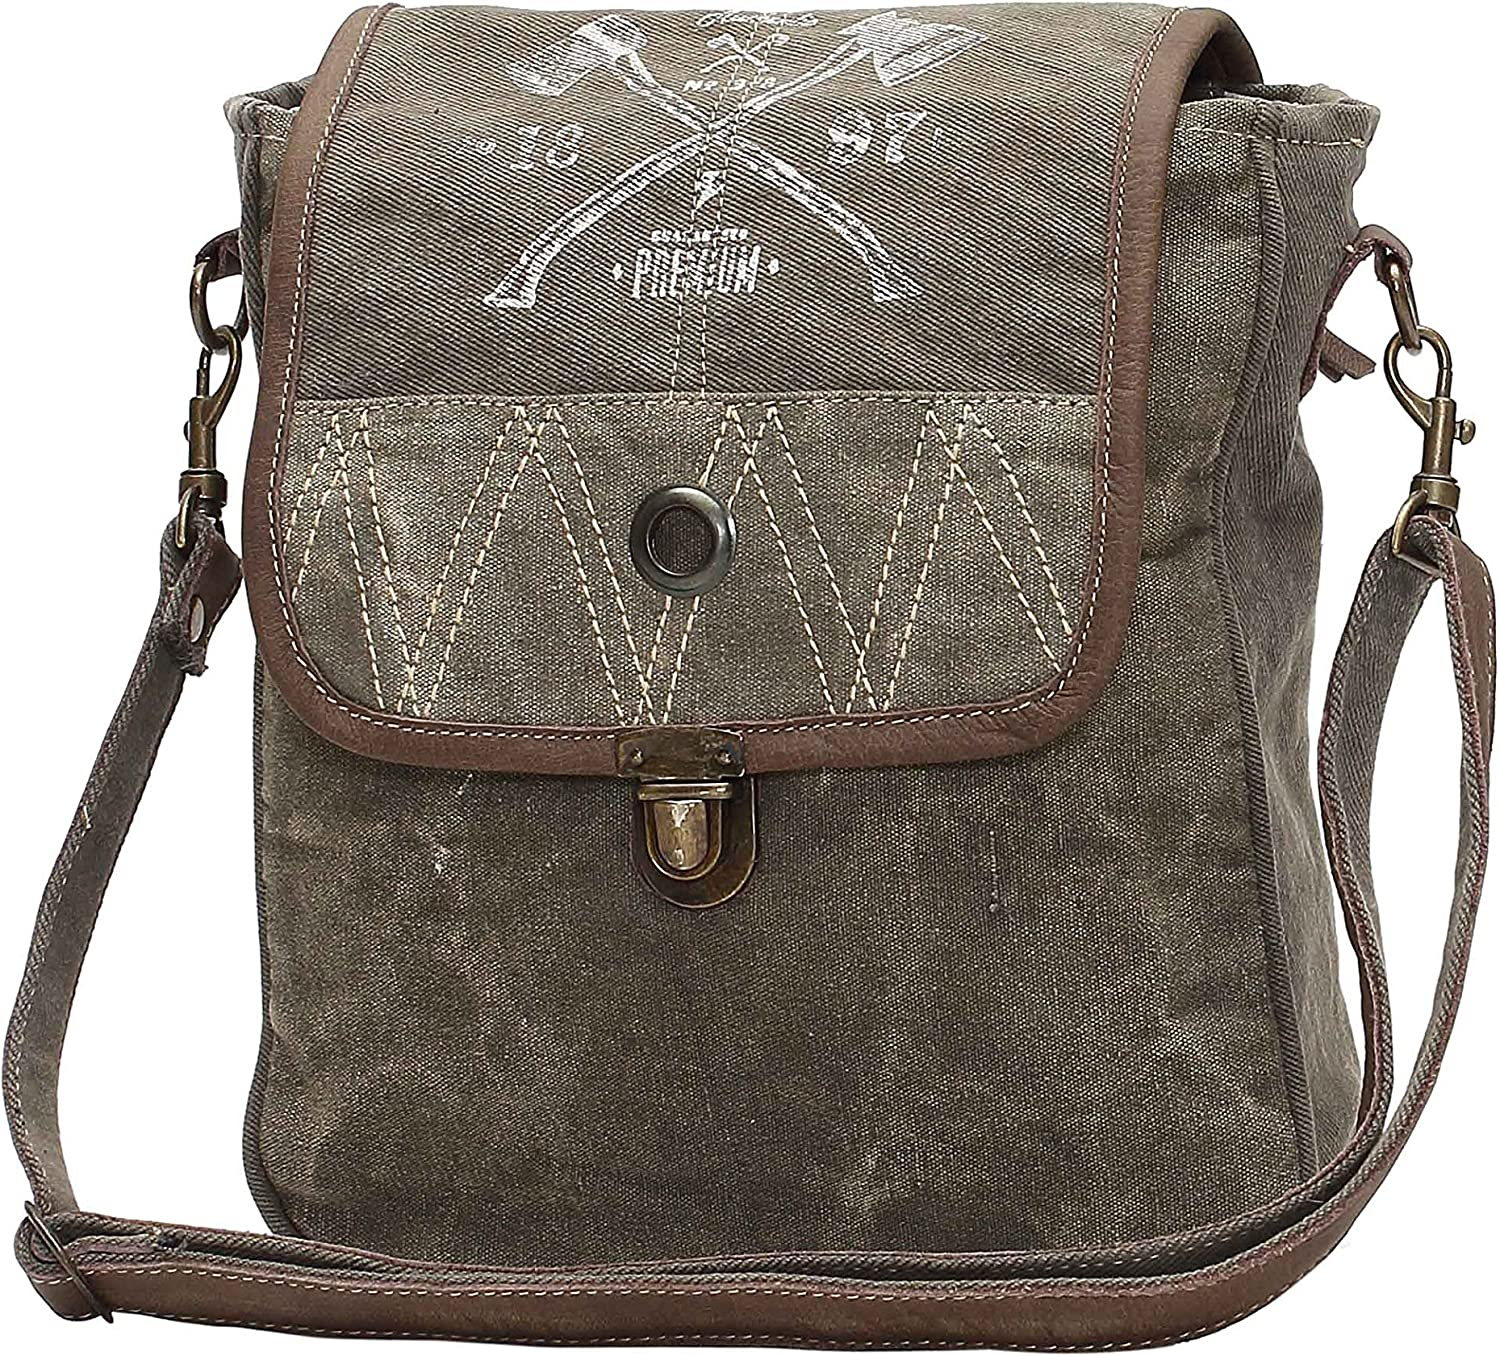 Amazon Com Myra Bags 1897 Upcycled Canvas Crossbody Bag S 1050 Tan Khaki Brown One Size Welcome to myra bags, we wish you many years of success retailing with our exceptional line of fine. myra bags 1897 upcycled canvas crossbody bag s 1050 tan khaki brown one size